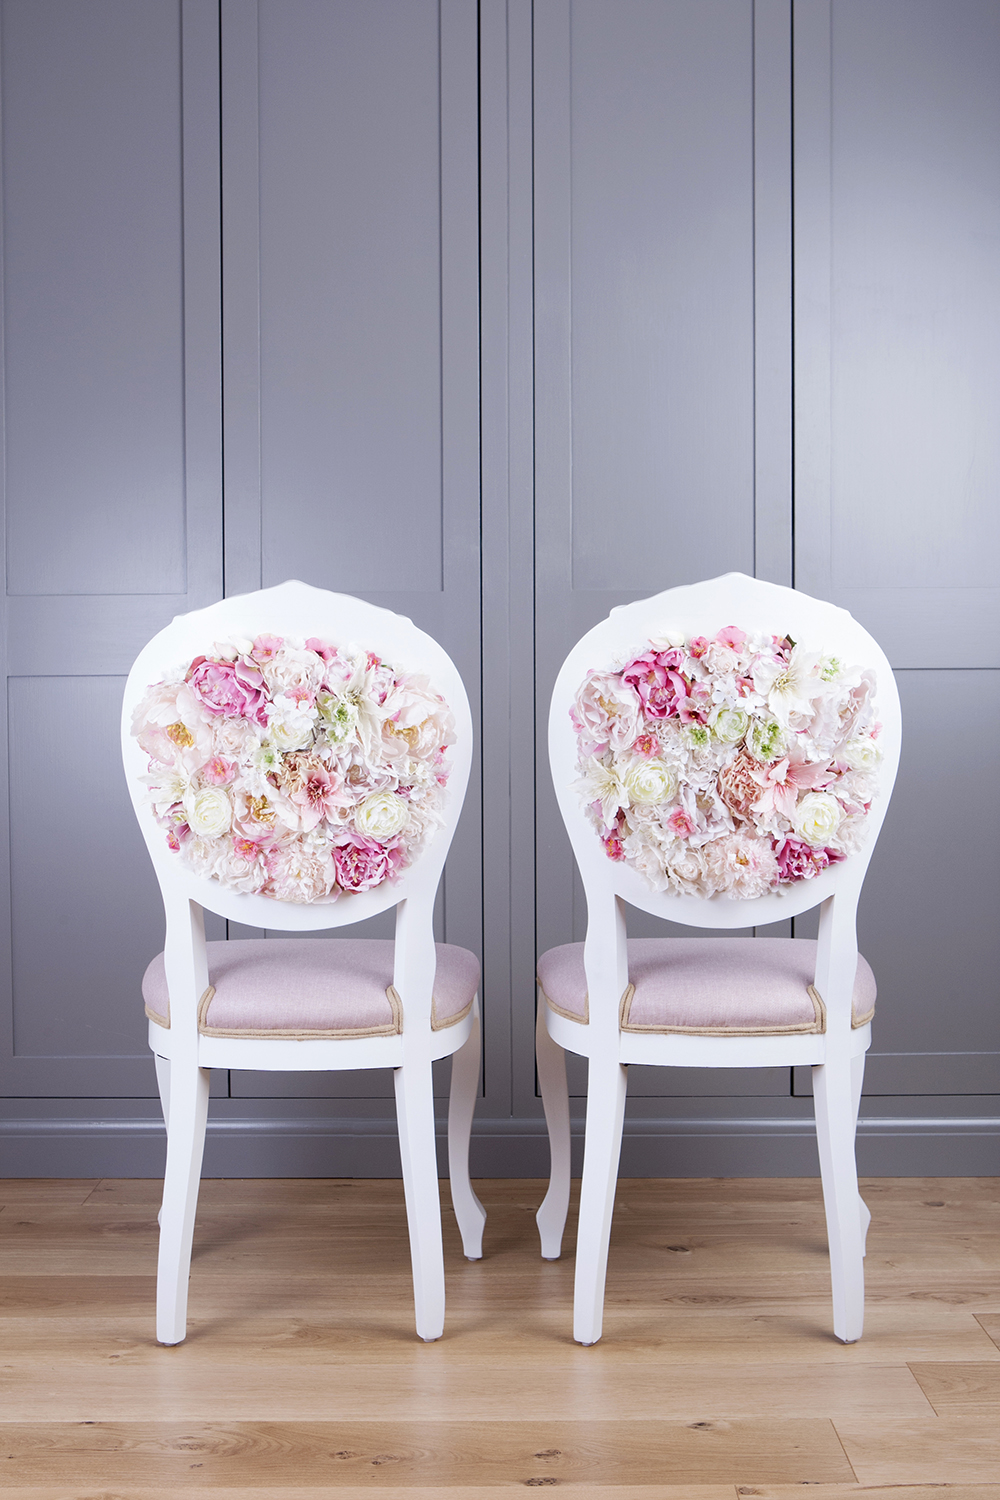 couture chairs, wedding couture chairs, furniture for weddings, uphostery for weddings, luxury upholstery for weddngs